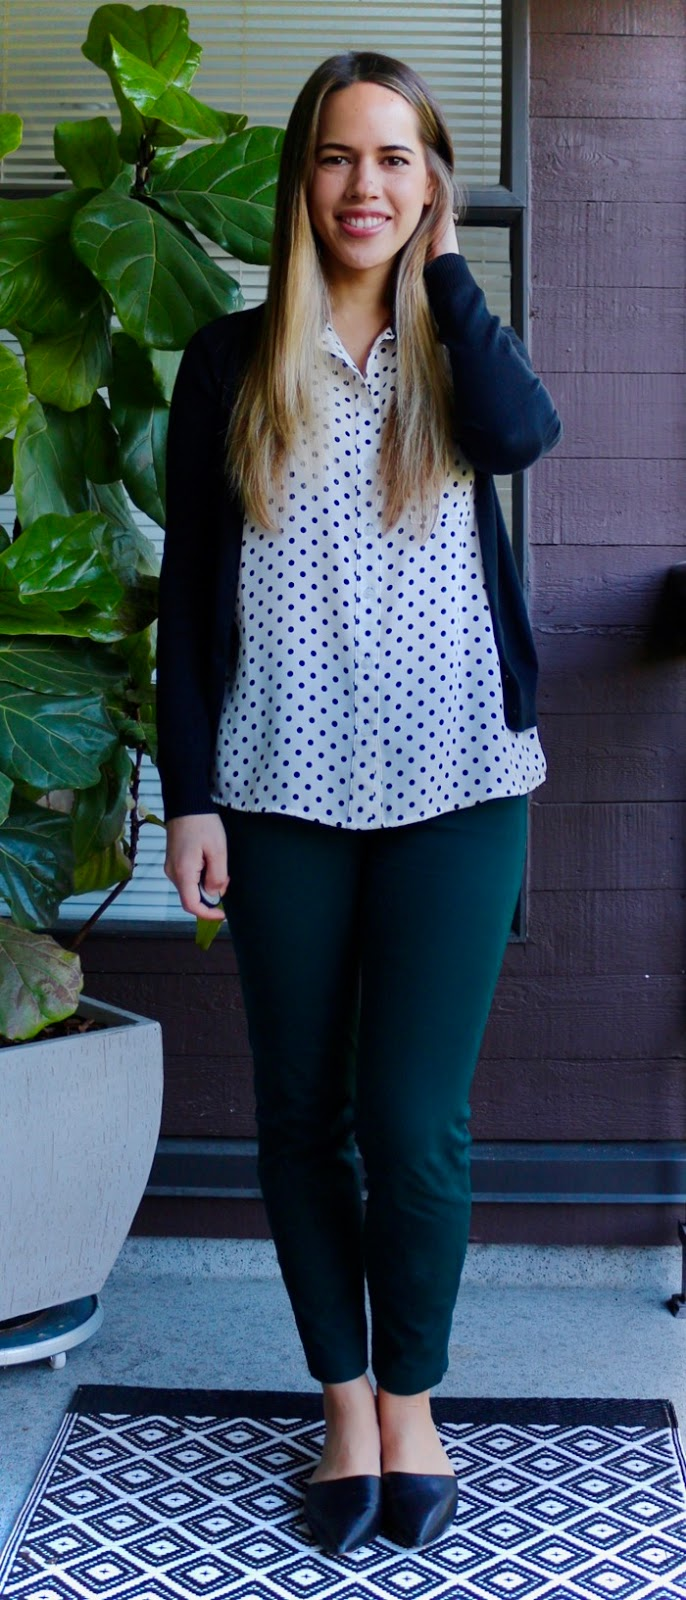 Jules in Flats - Polka Dot Top for Spring